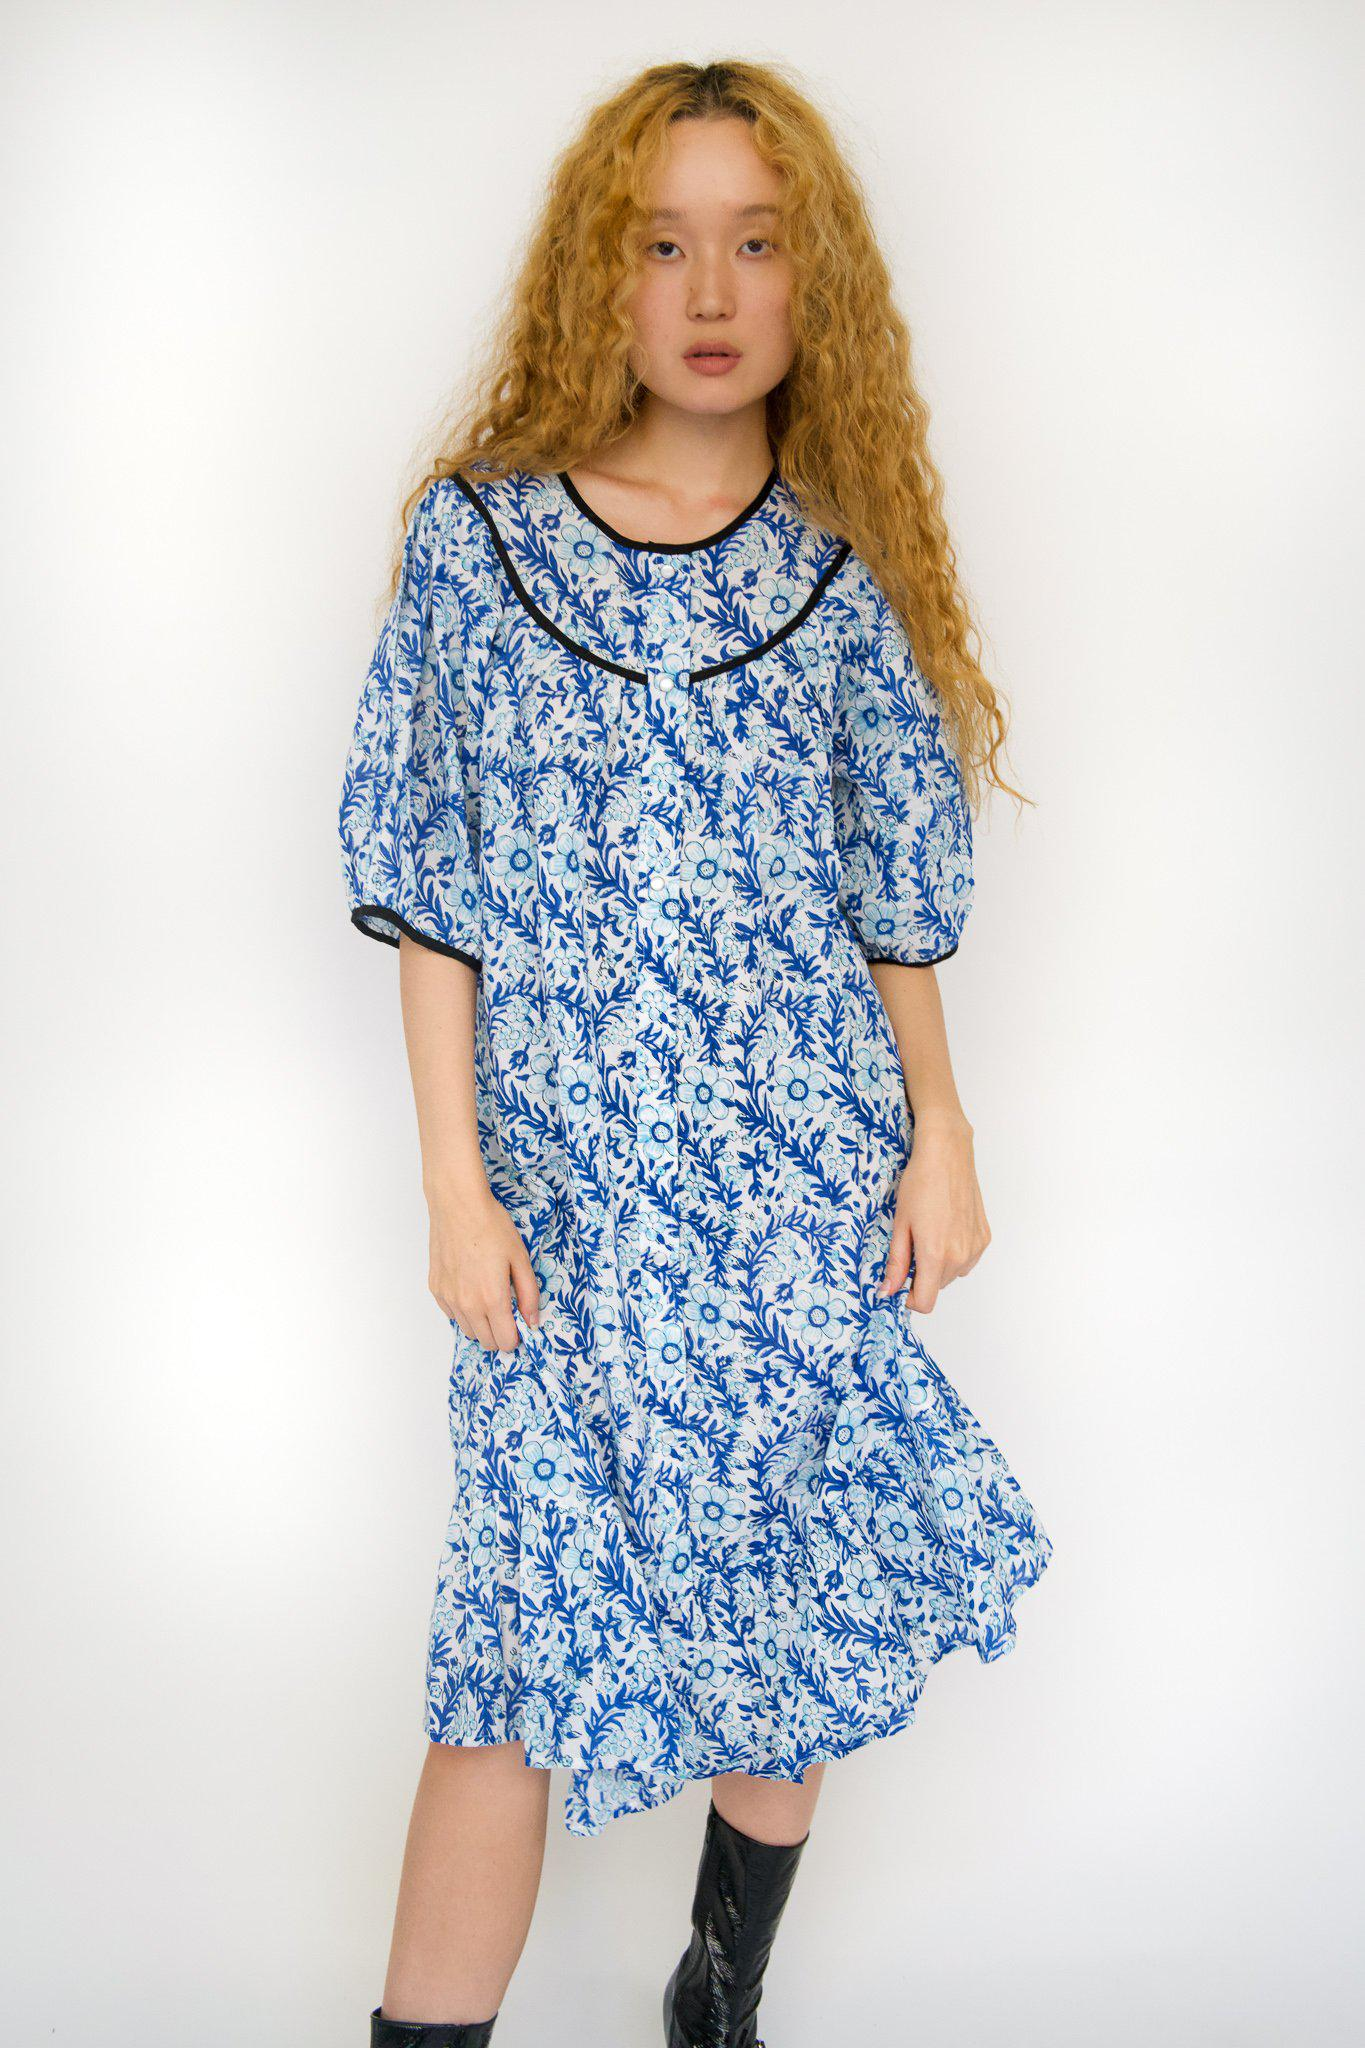 Snap Housedress in Blue Floral